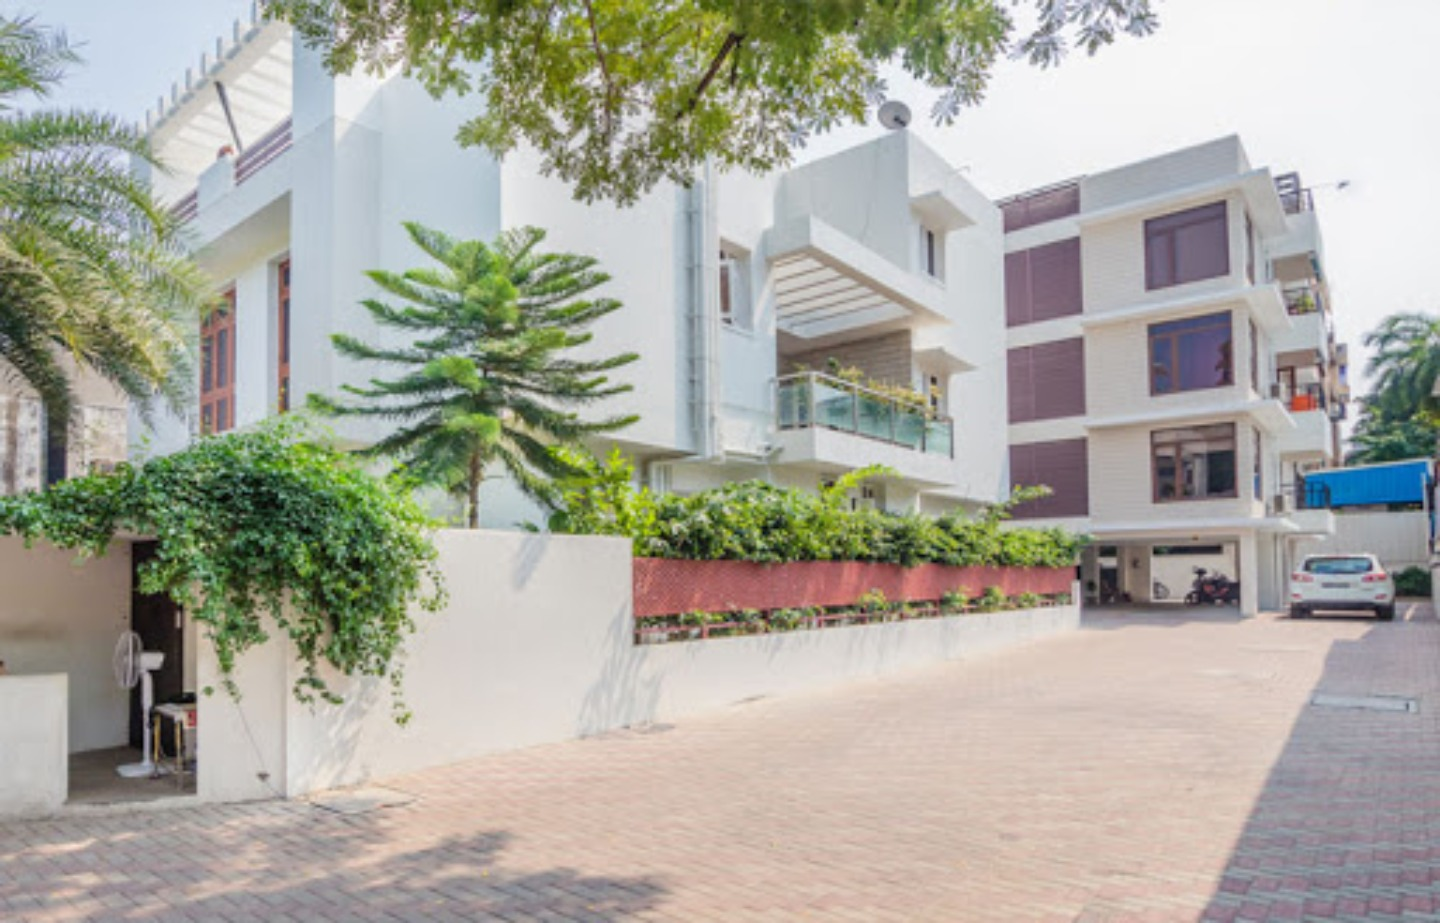 A person standing in front of a building at Kolam Serviced Apartments.